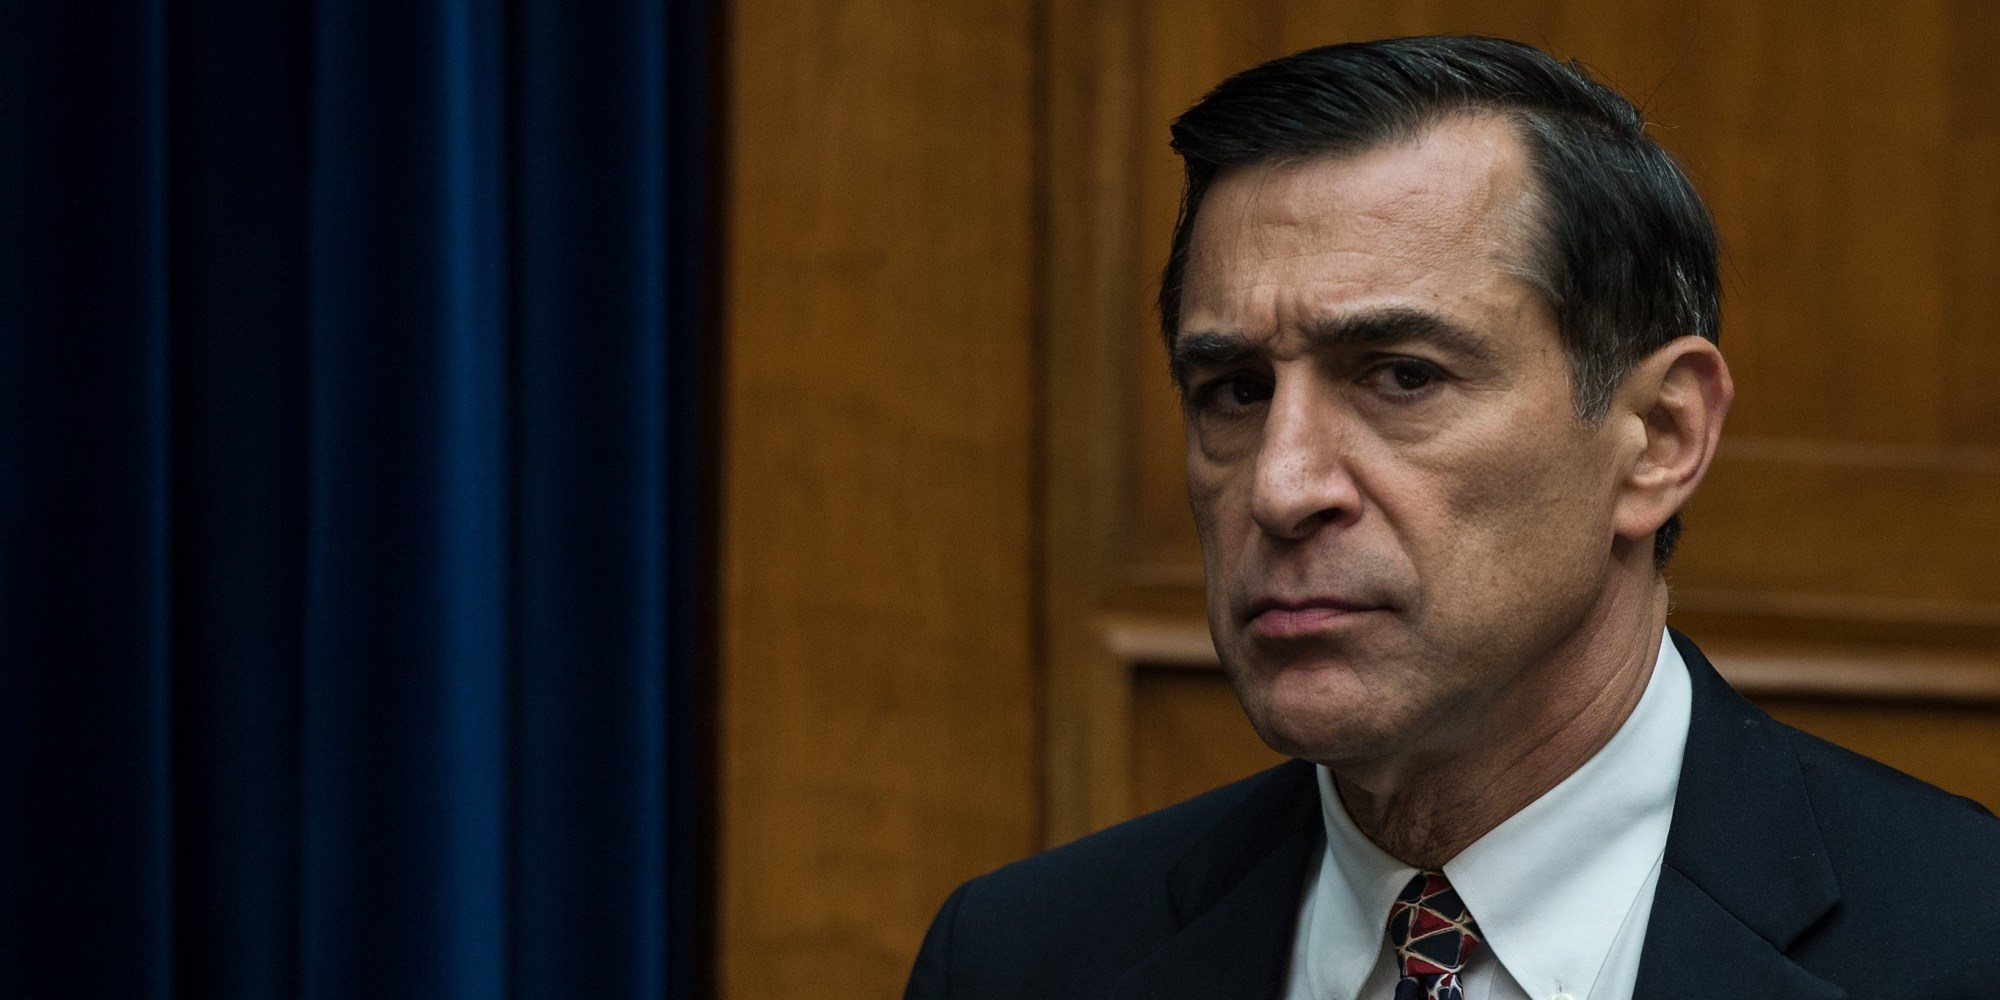 Mr. Issa in trouble?